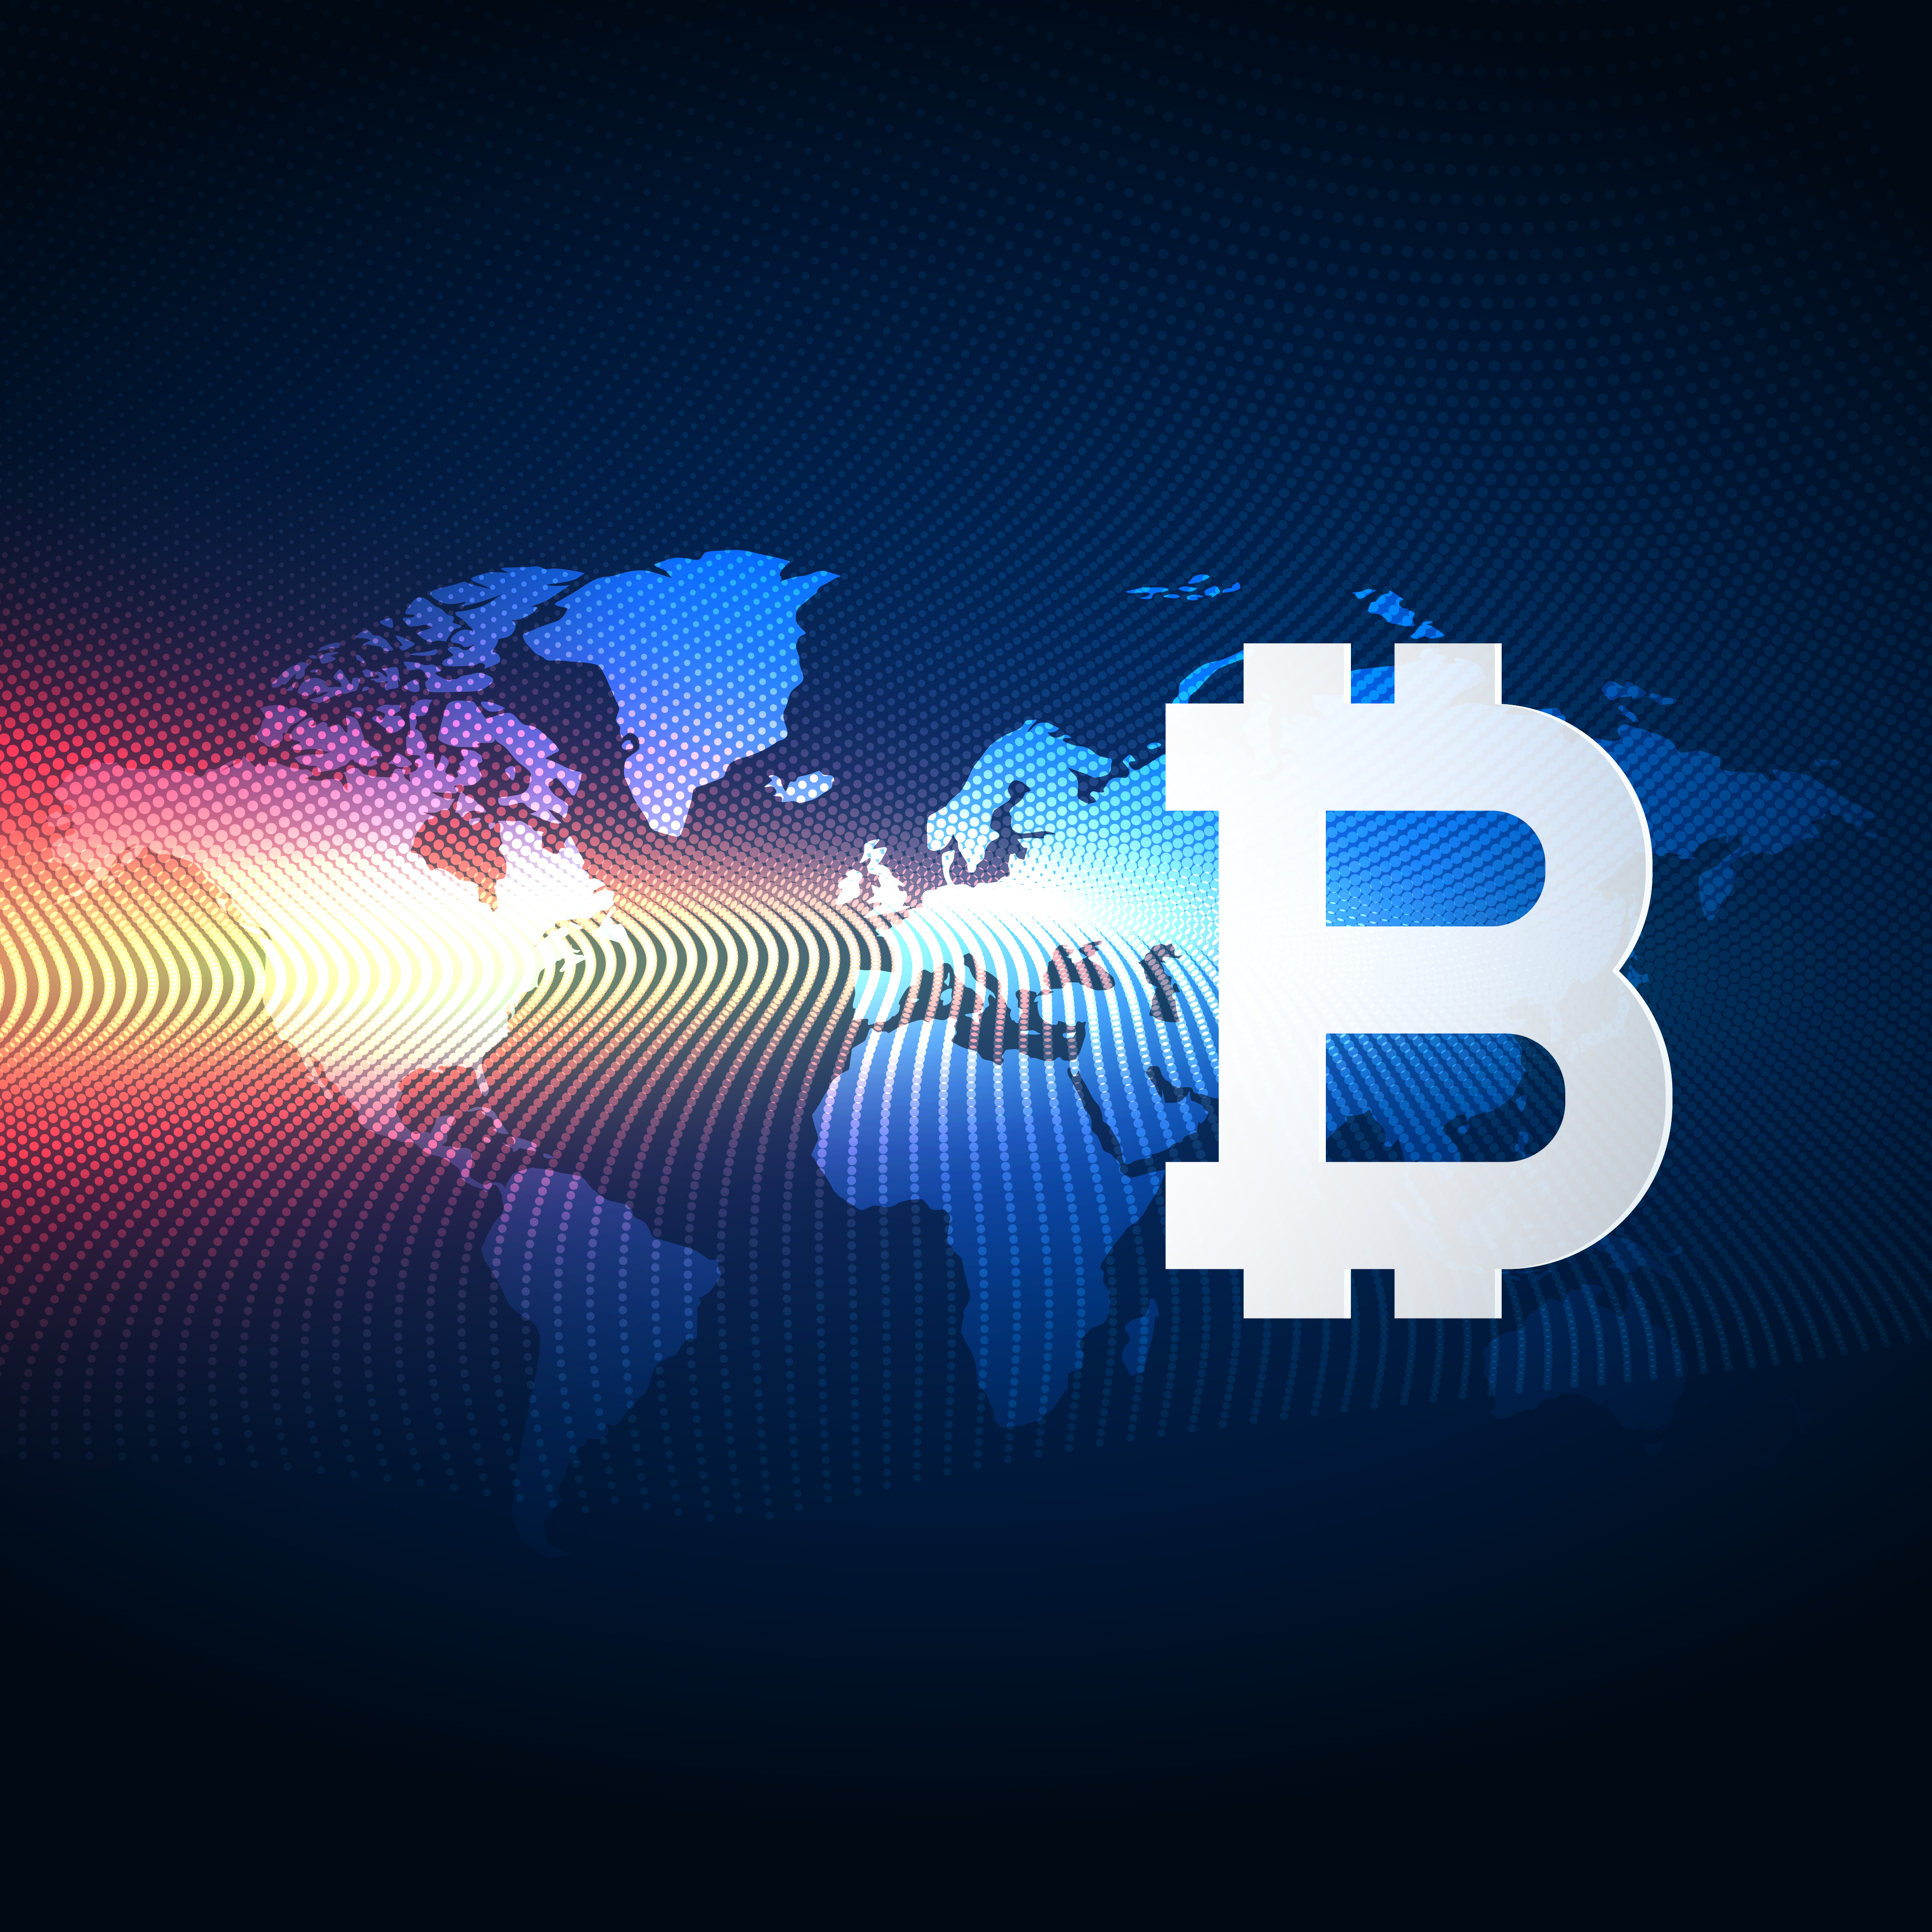 Bitcoins Digital Currency Technology Background Download